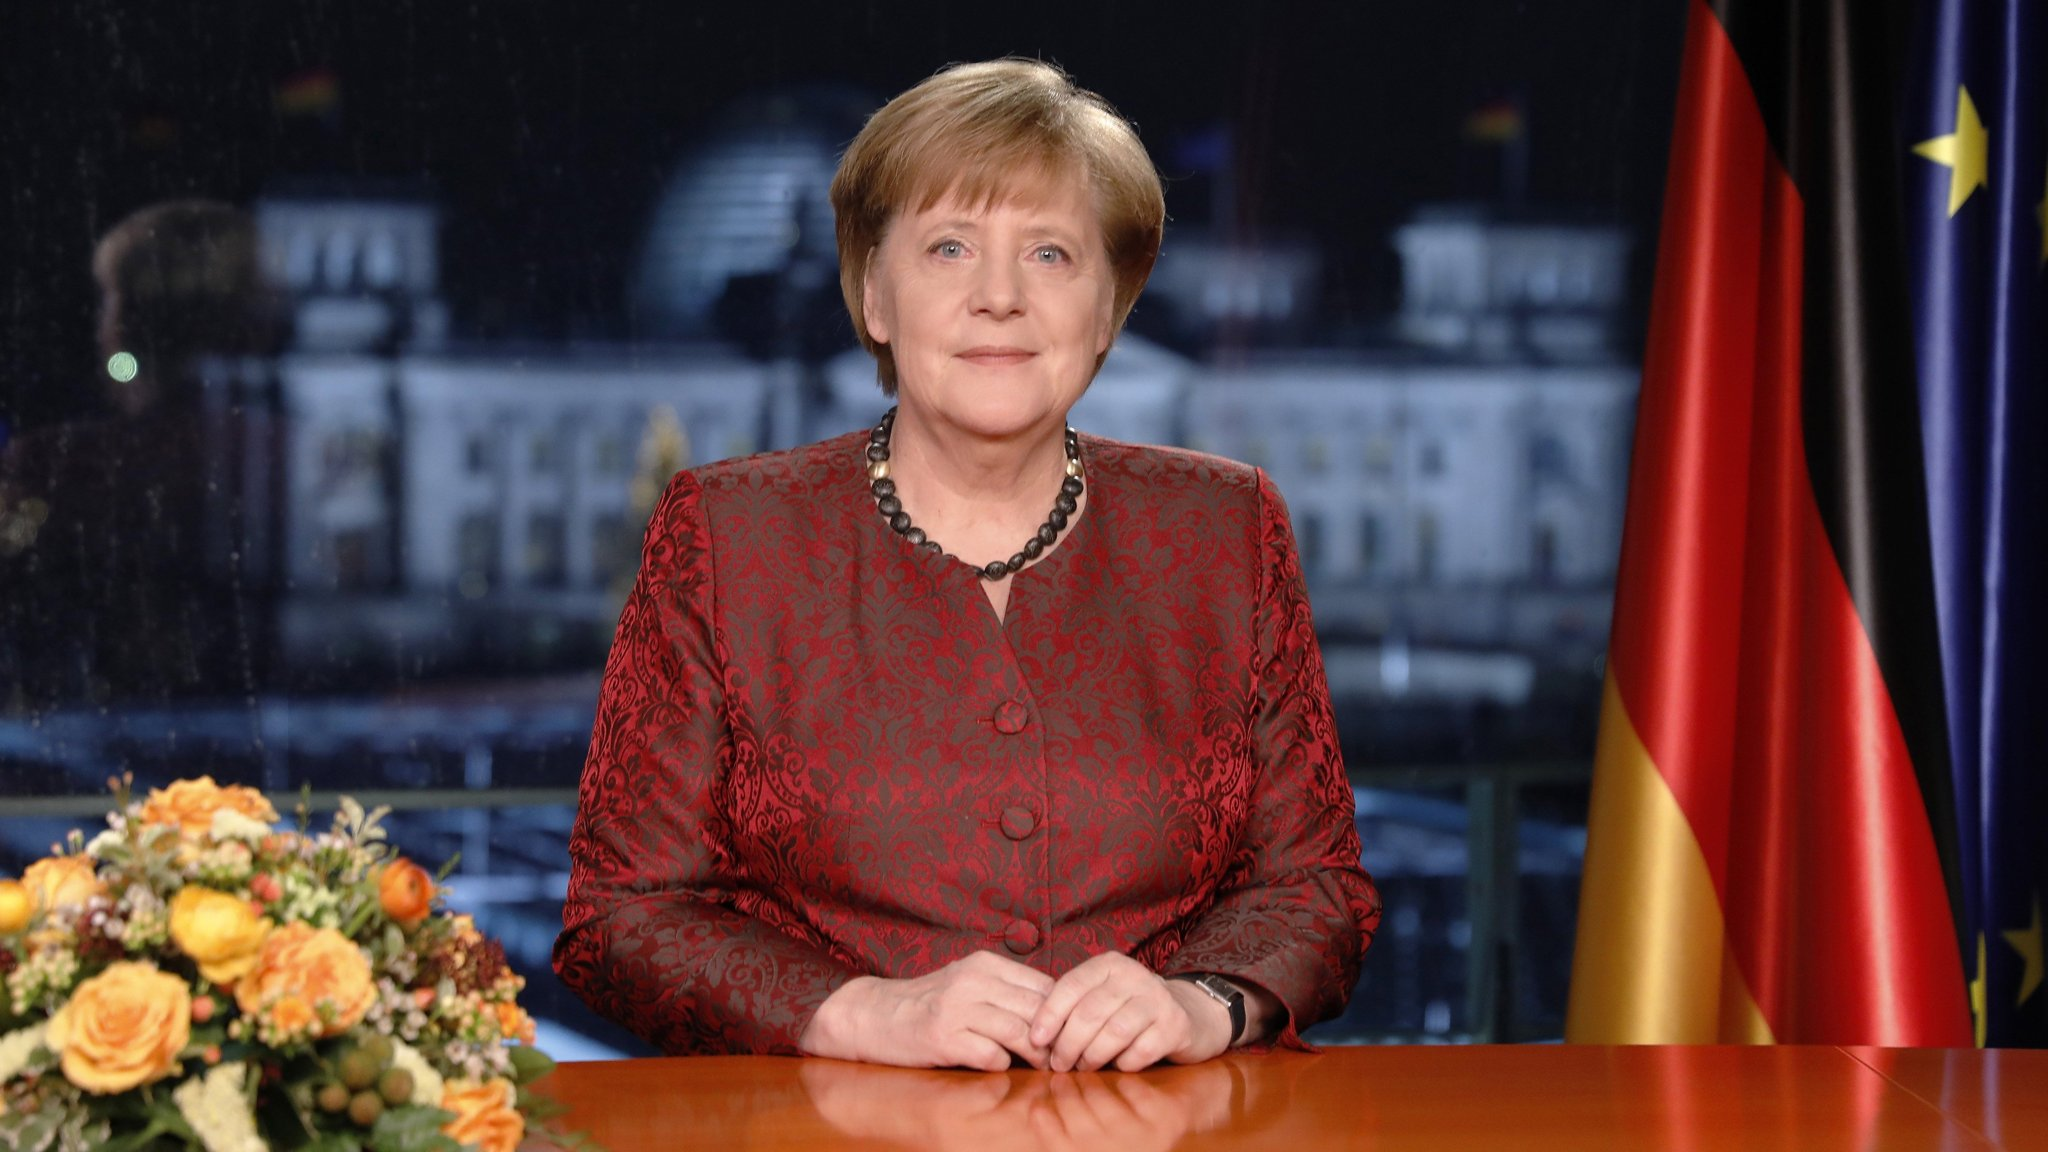 Merkel pledges to work quickly to form new government